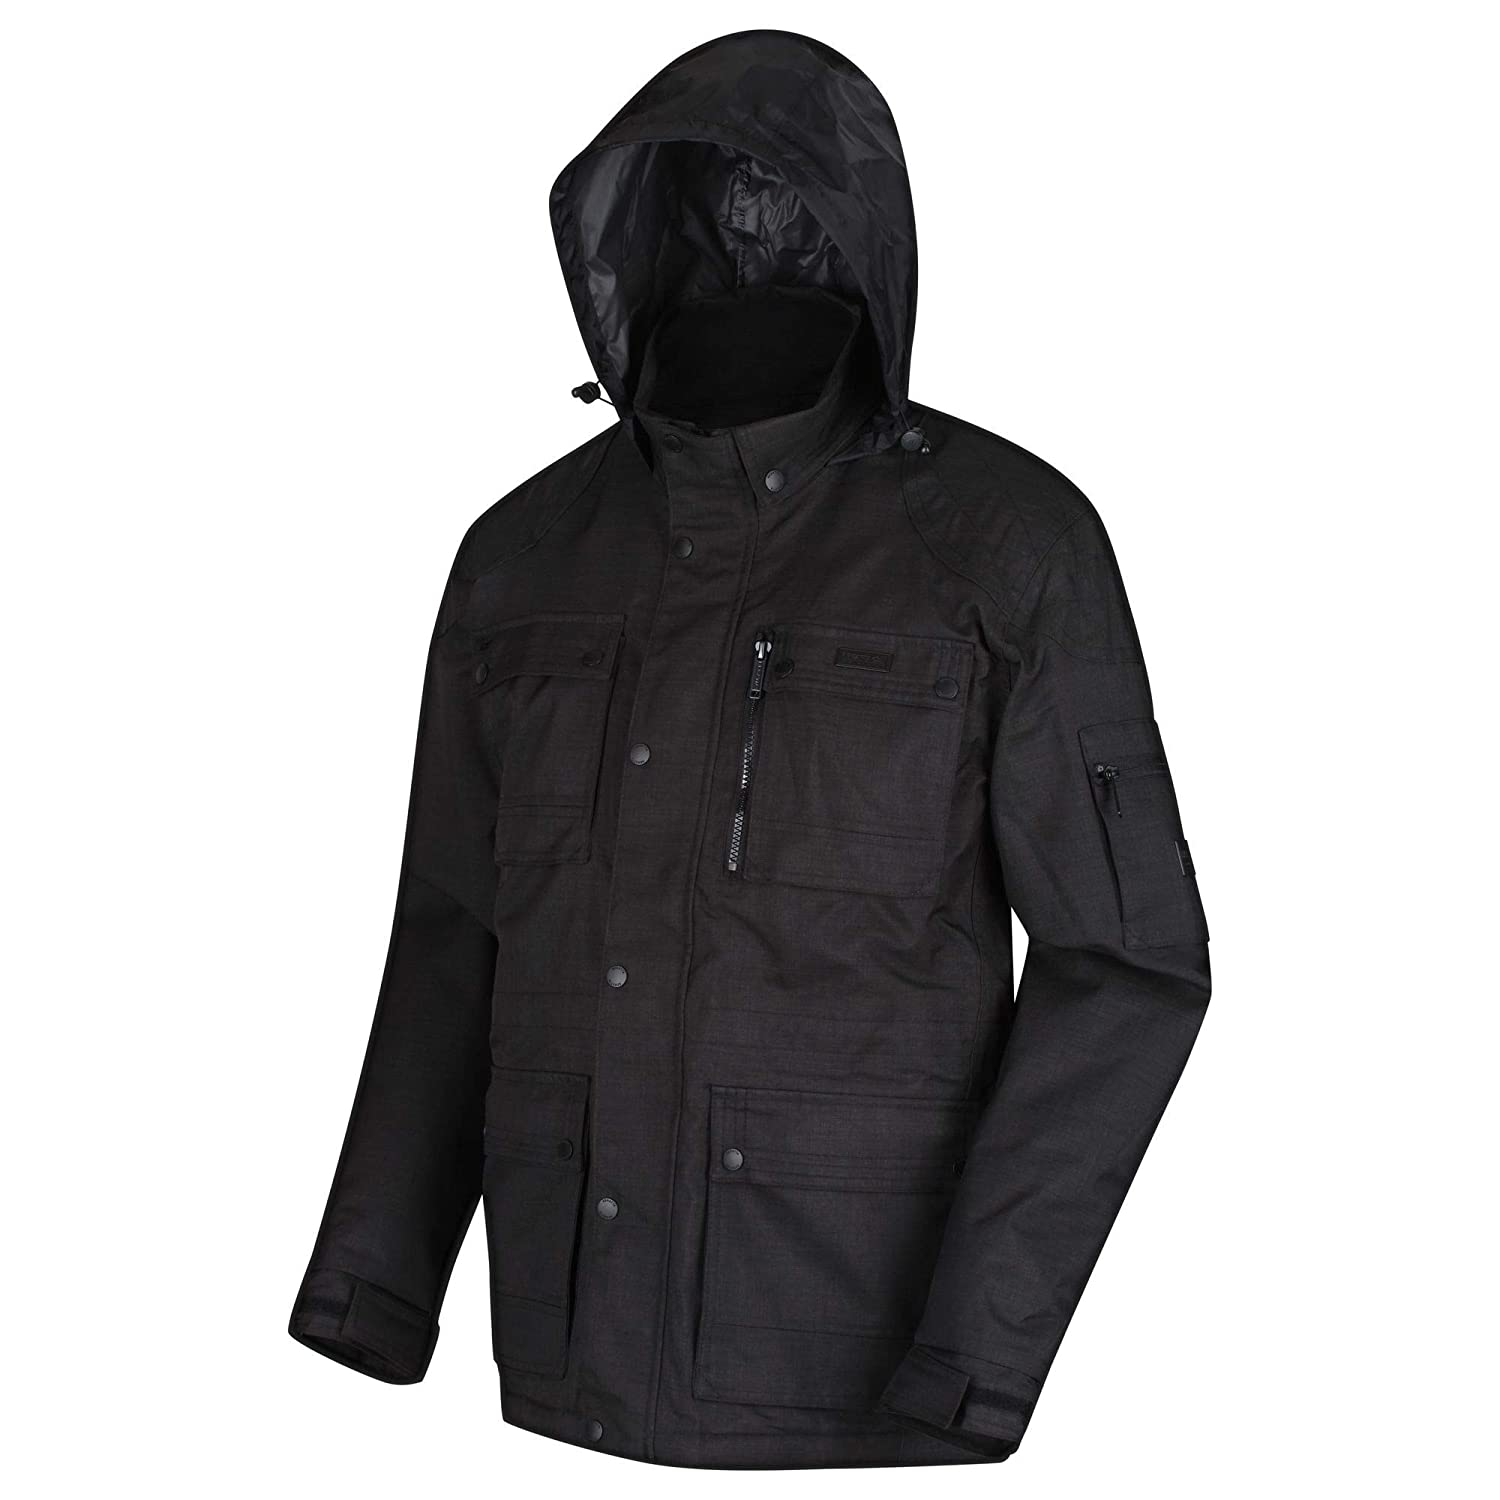 Regatta Mens Erving Waterproof /& Breathable Thermo-guard Insulated Concealed Hooded Jacket Waterproof